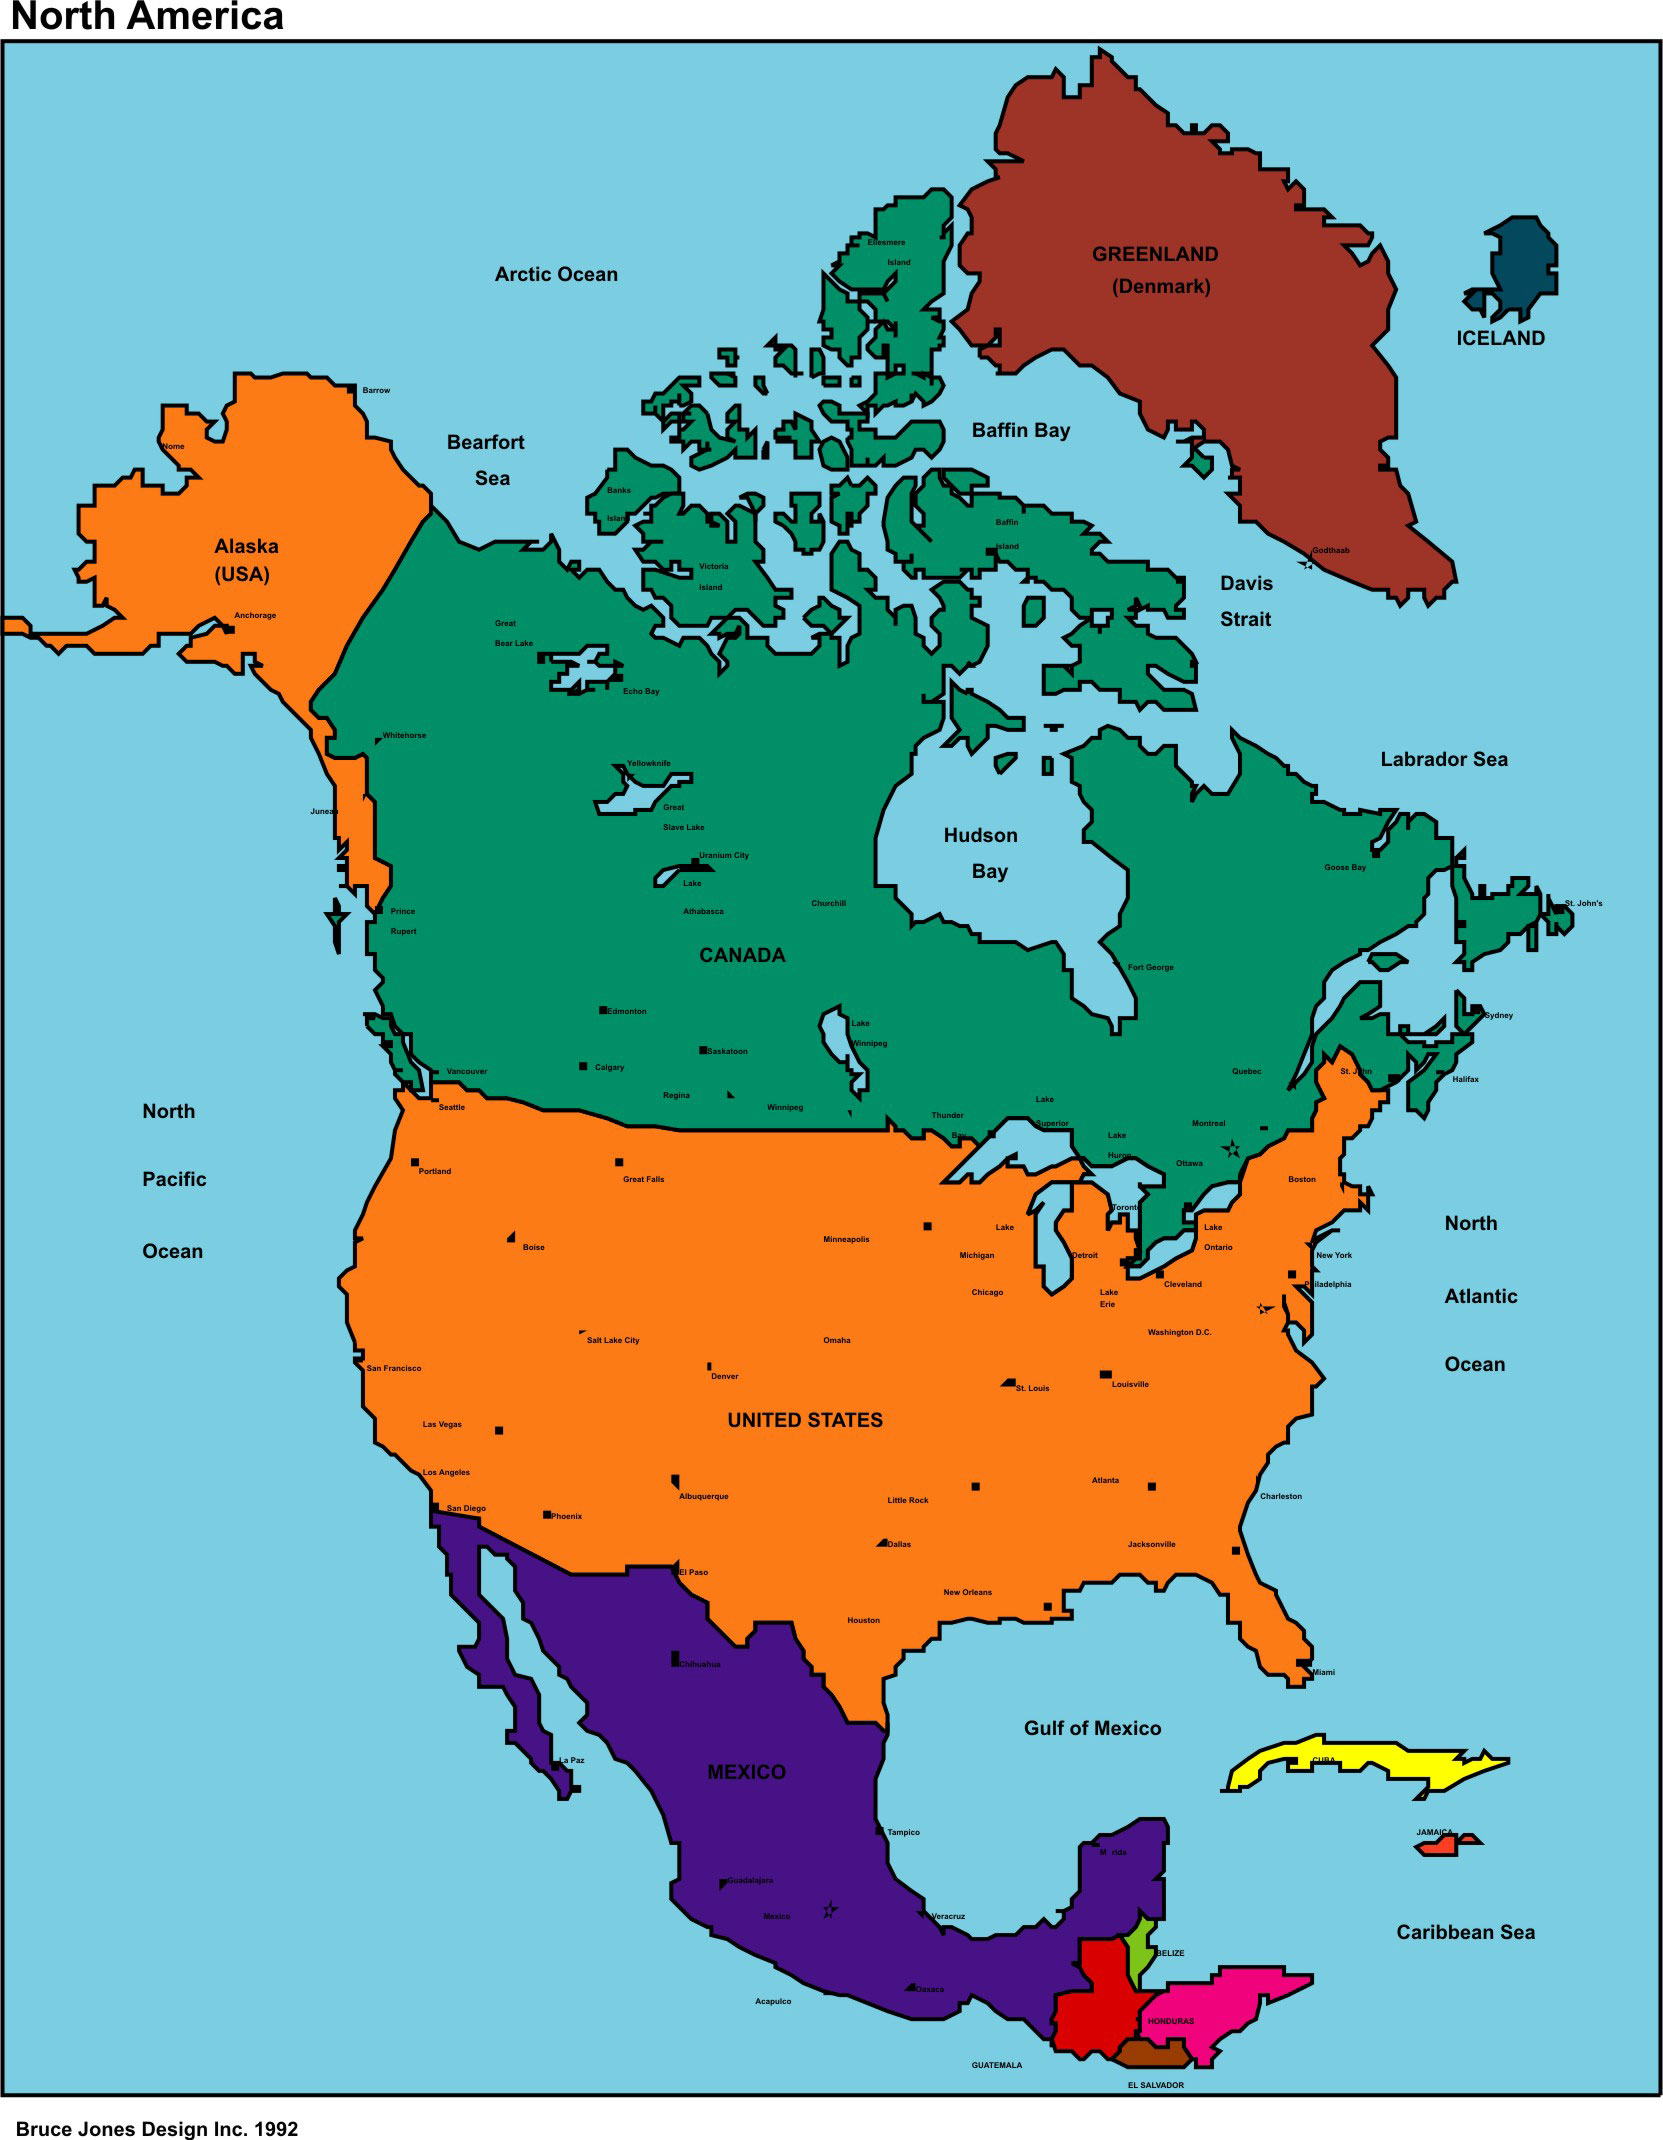 North America Political map, USA, U S, U S A